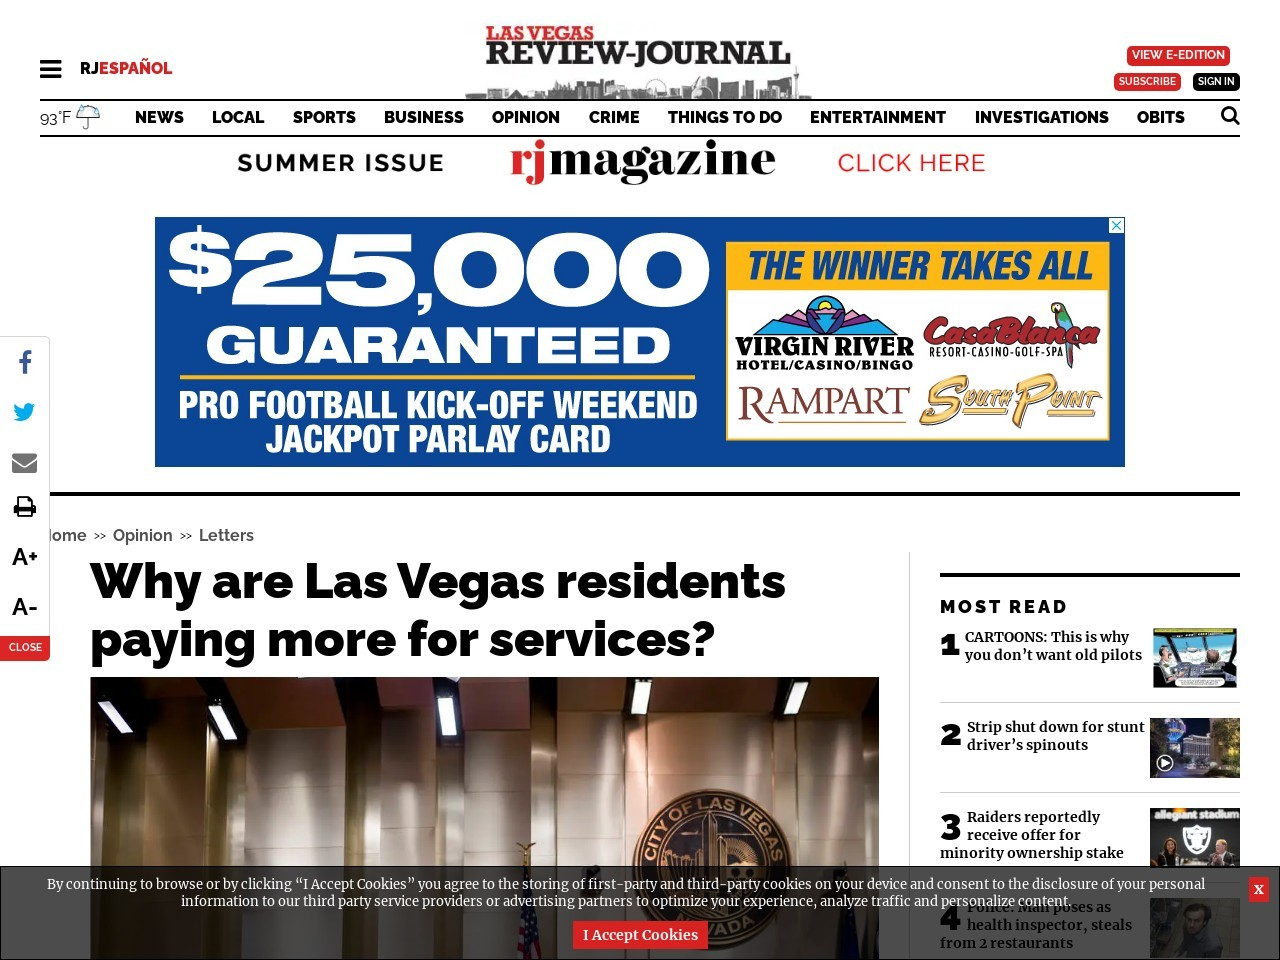 Why are Las Vegas residents paying more for services?